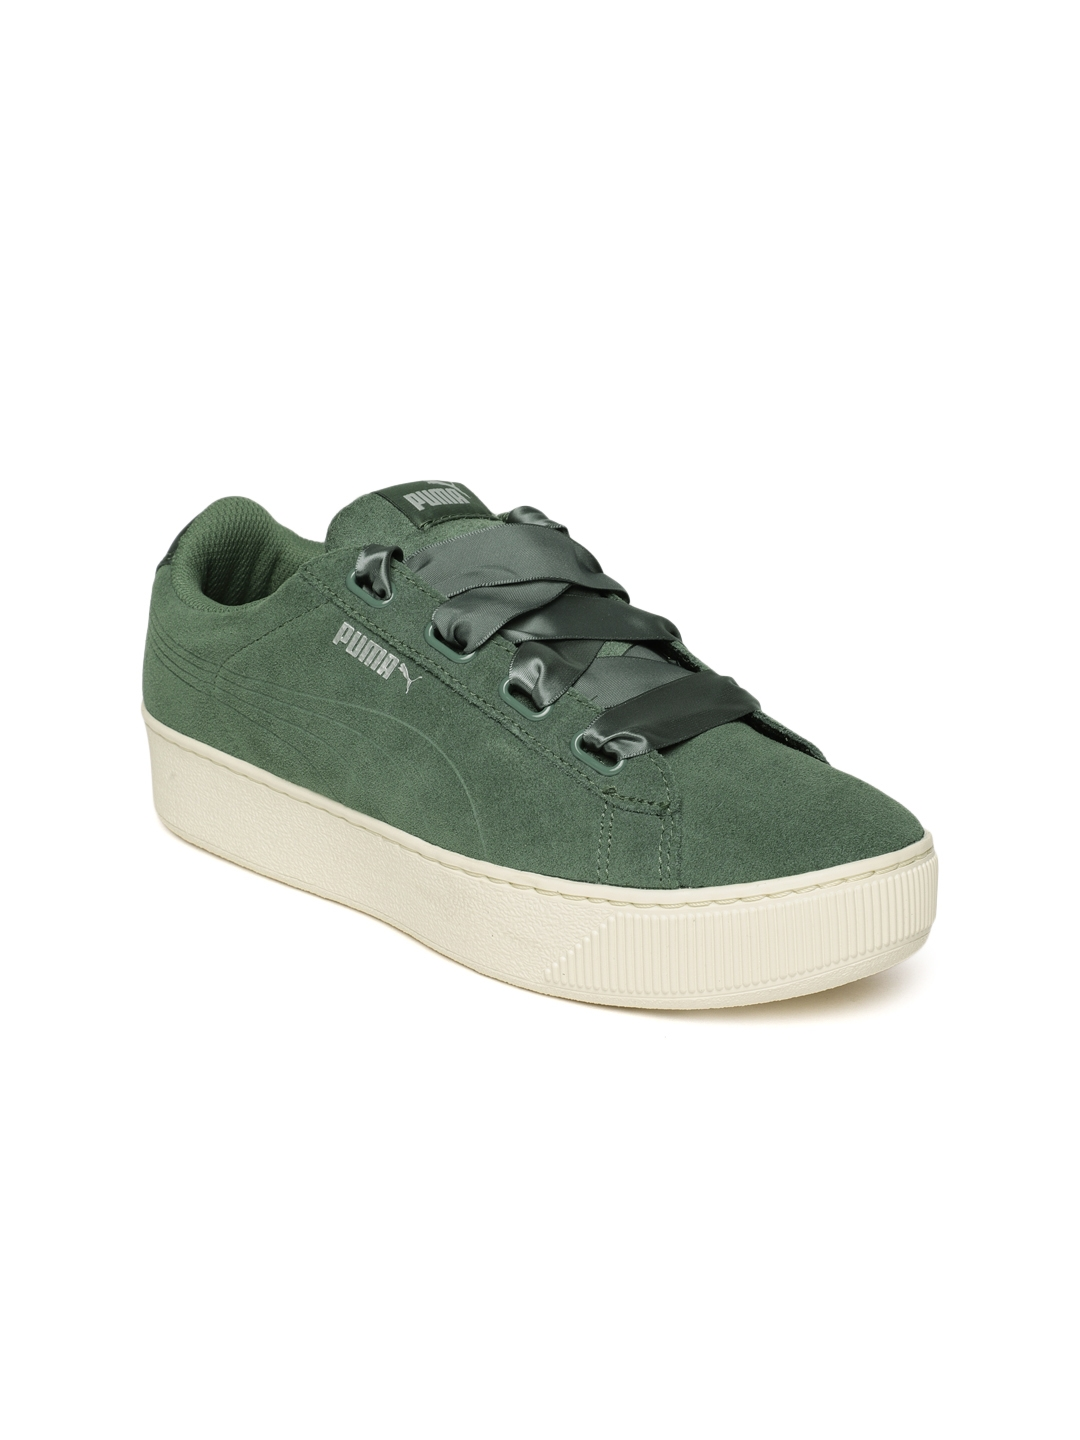 Buy Puma Women Olive Green Vikky Platform Ribbon S Suede Sneakers ... 31bff8b20